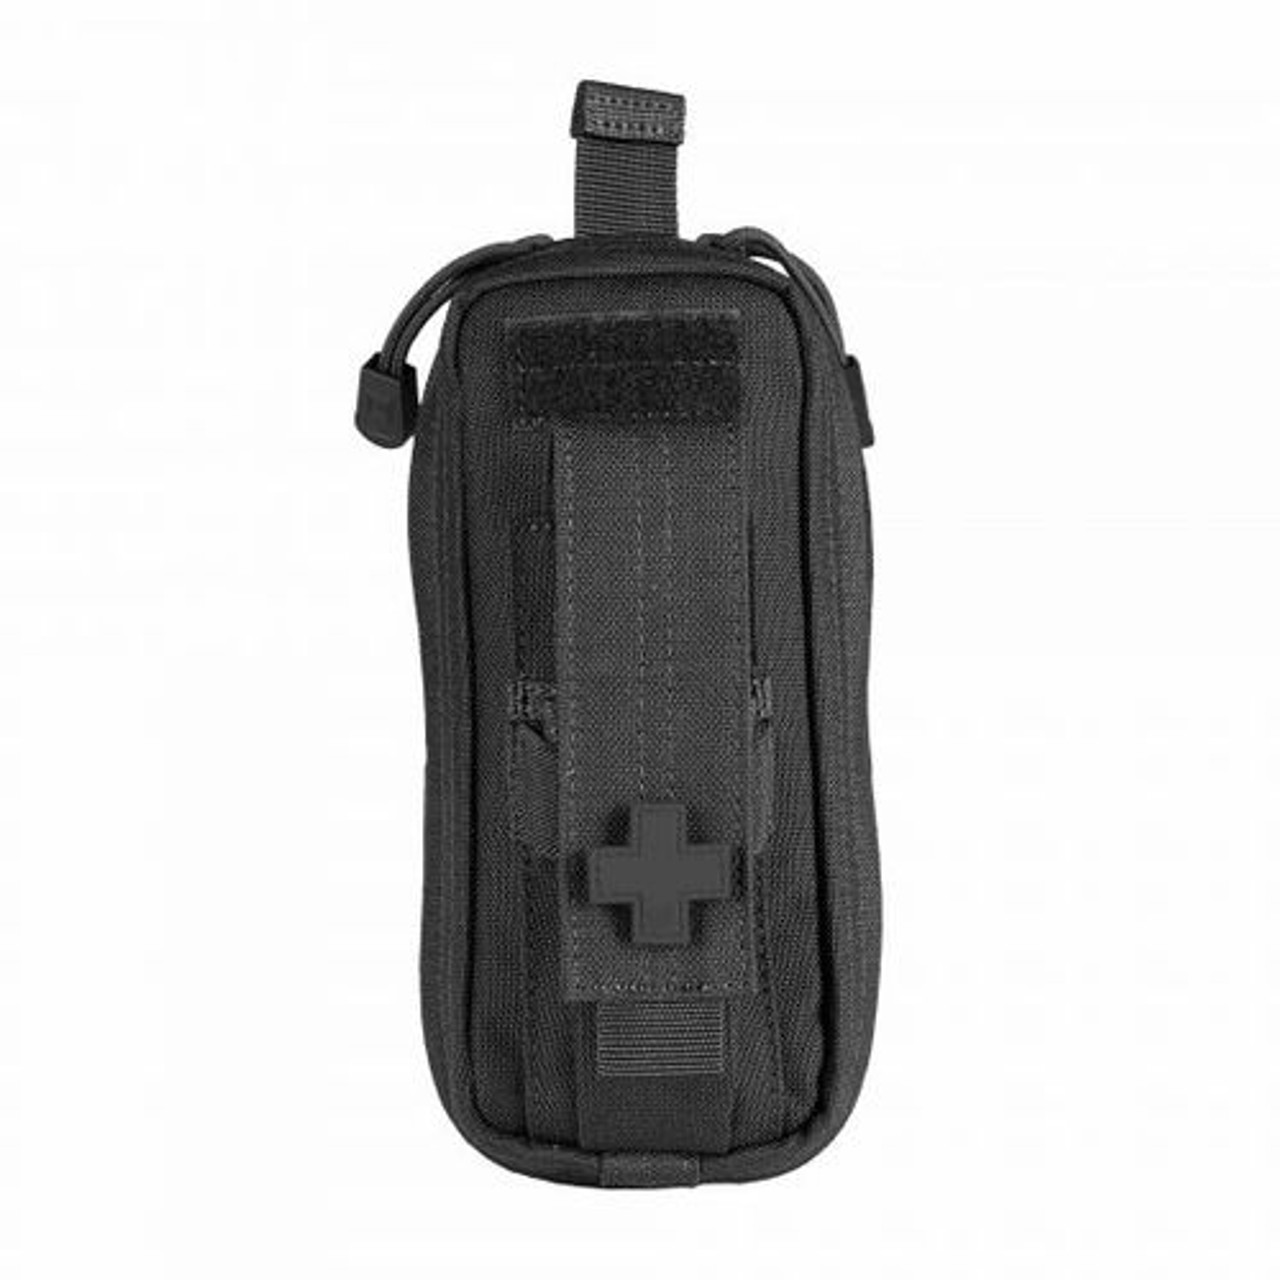 5.11 Tactical 3 X 6 MED KIT, First-aid specific internal pockets, Durable nylon construction, Secure tourniquet storage, 56096